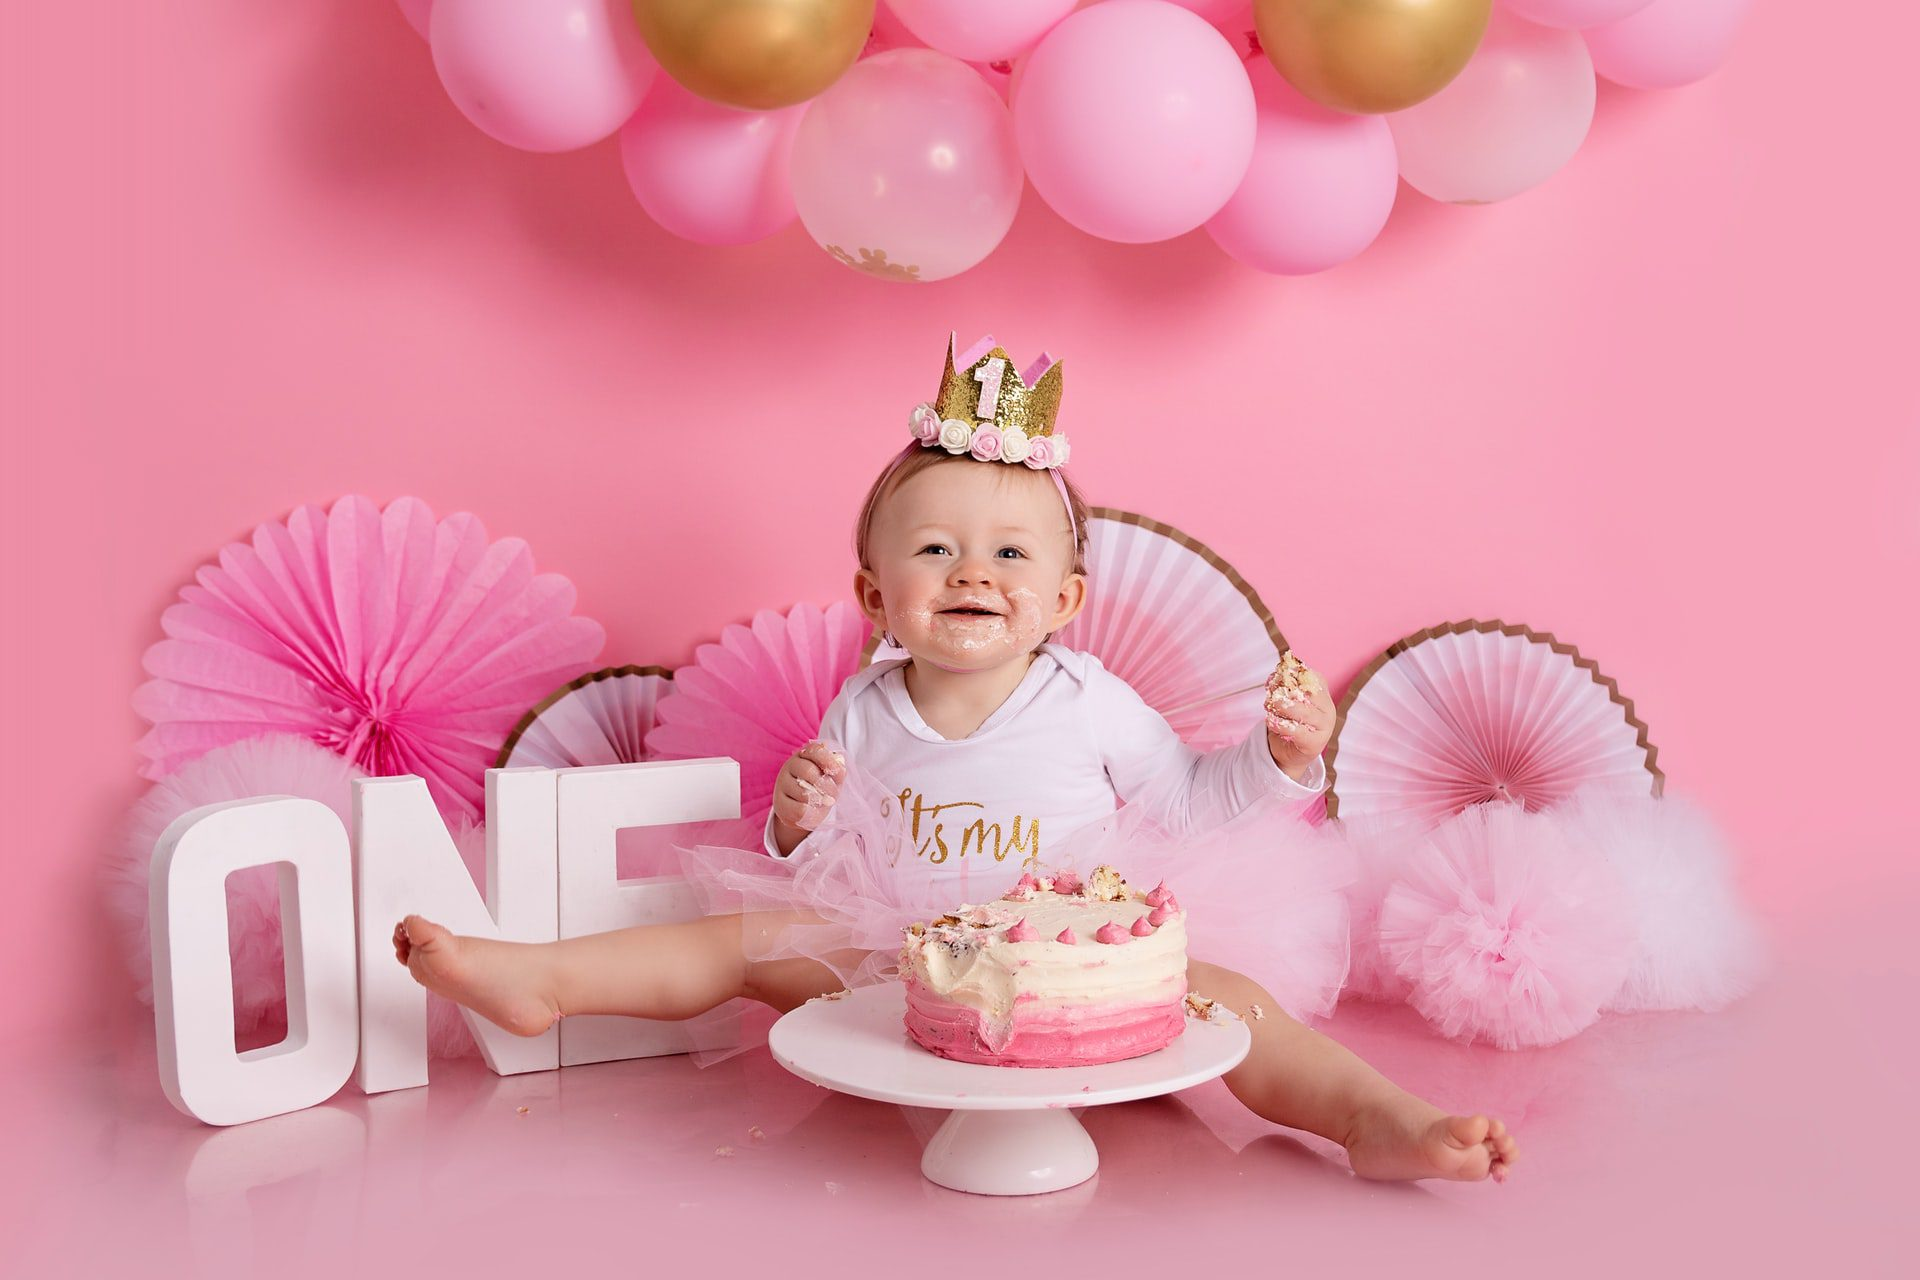 Top No Stress Tips for a Simple First Birthday Party